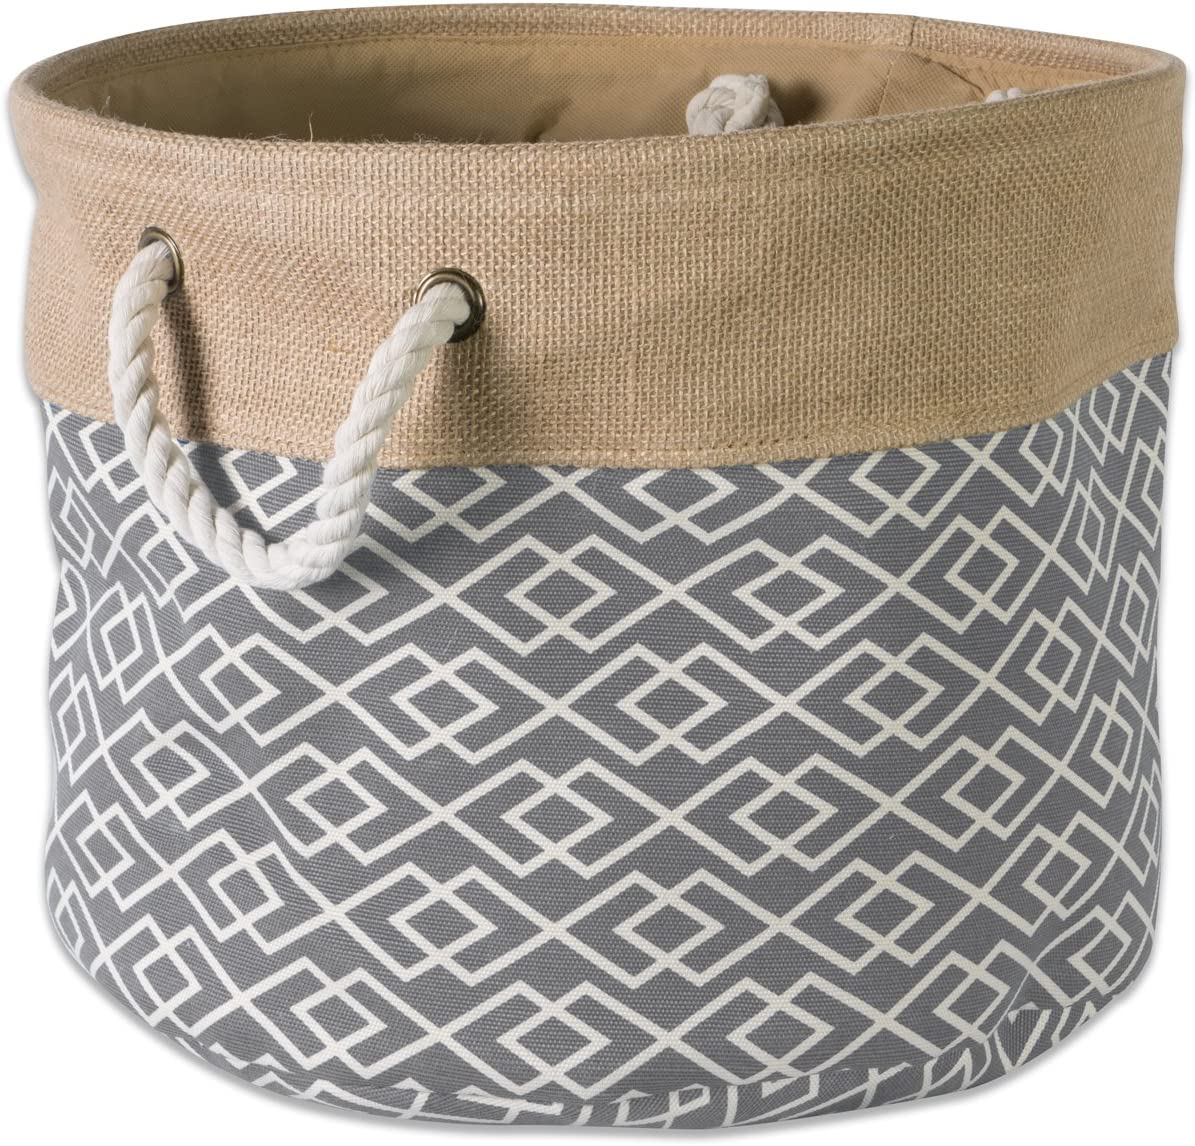 "DII Collapsible Burlap Storage Basket or Bin with Durable Cotton Handles, Home Organizational Solution for Office, Bedroom, Closet, Toys, & Laundry (Small Round - 12x9""), Diamond Gray"